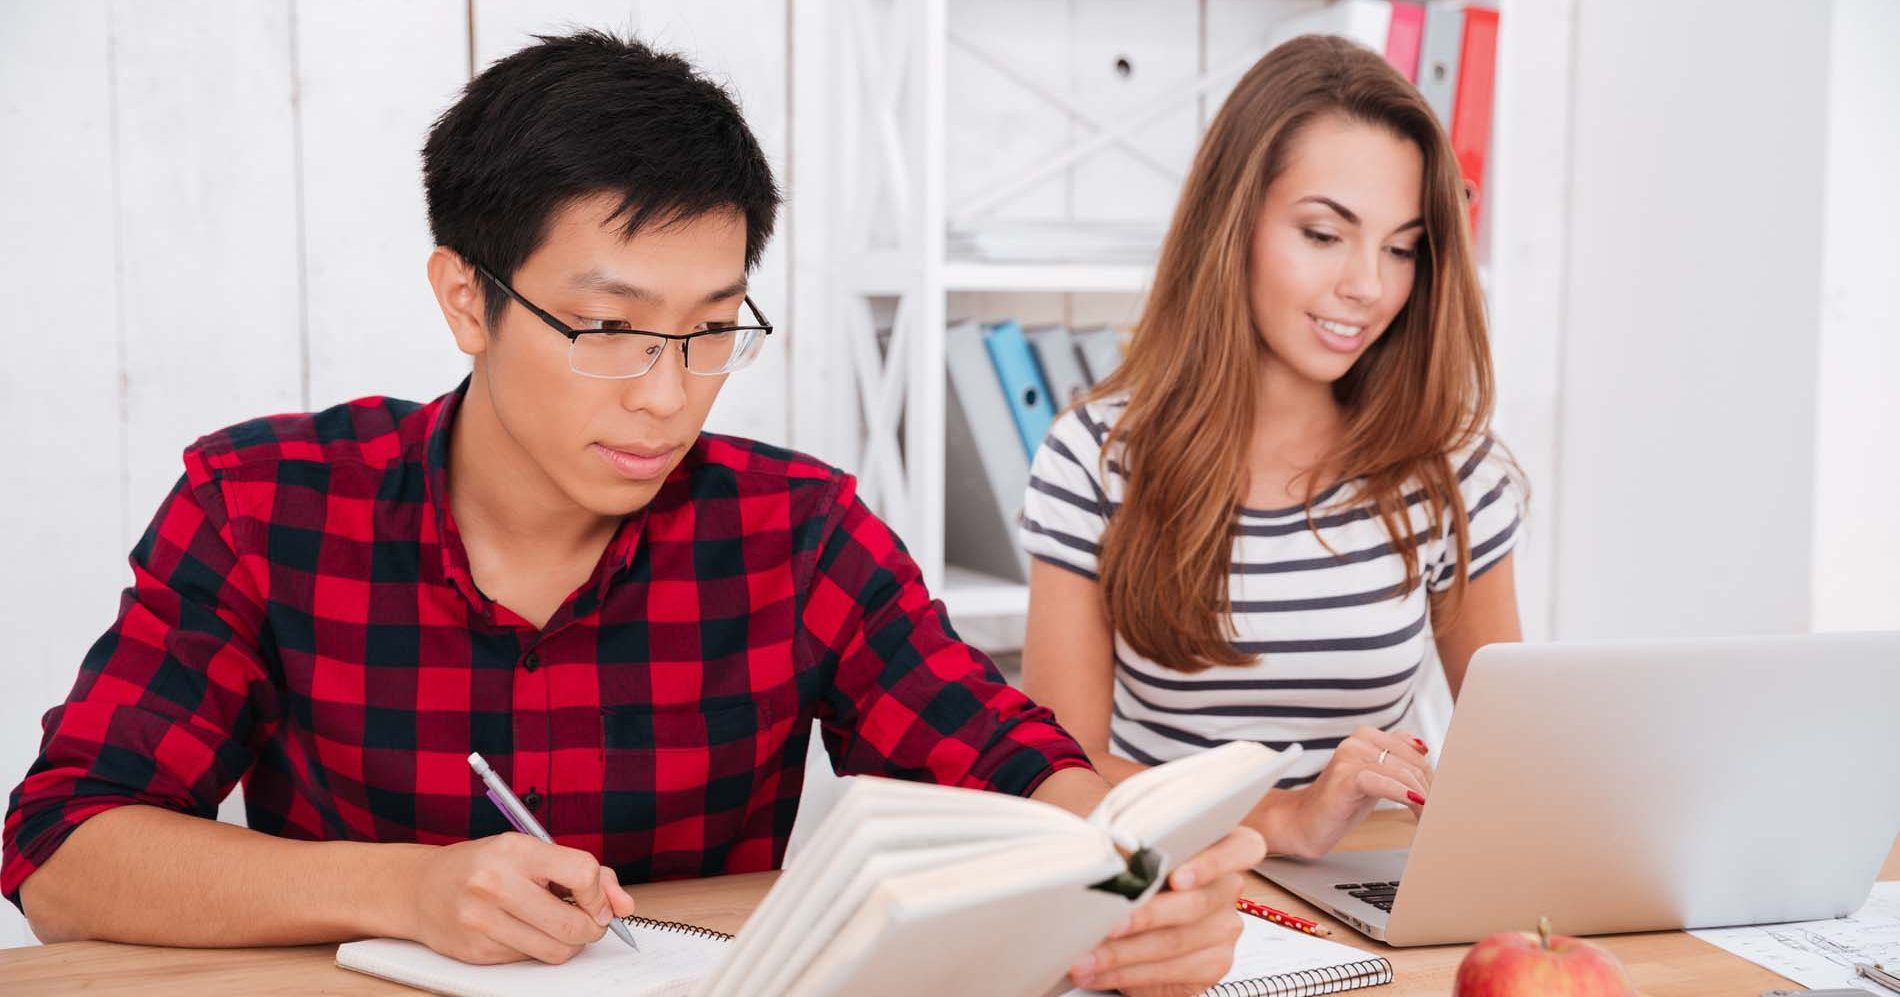 Photo of cheerful students looking at book and laptop